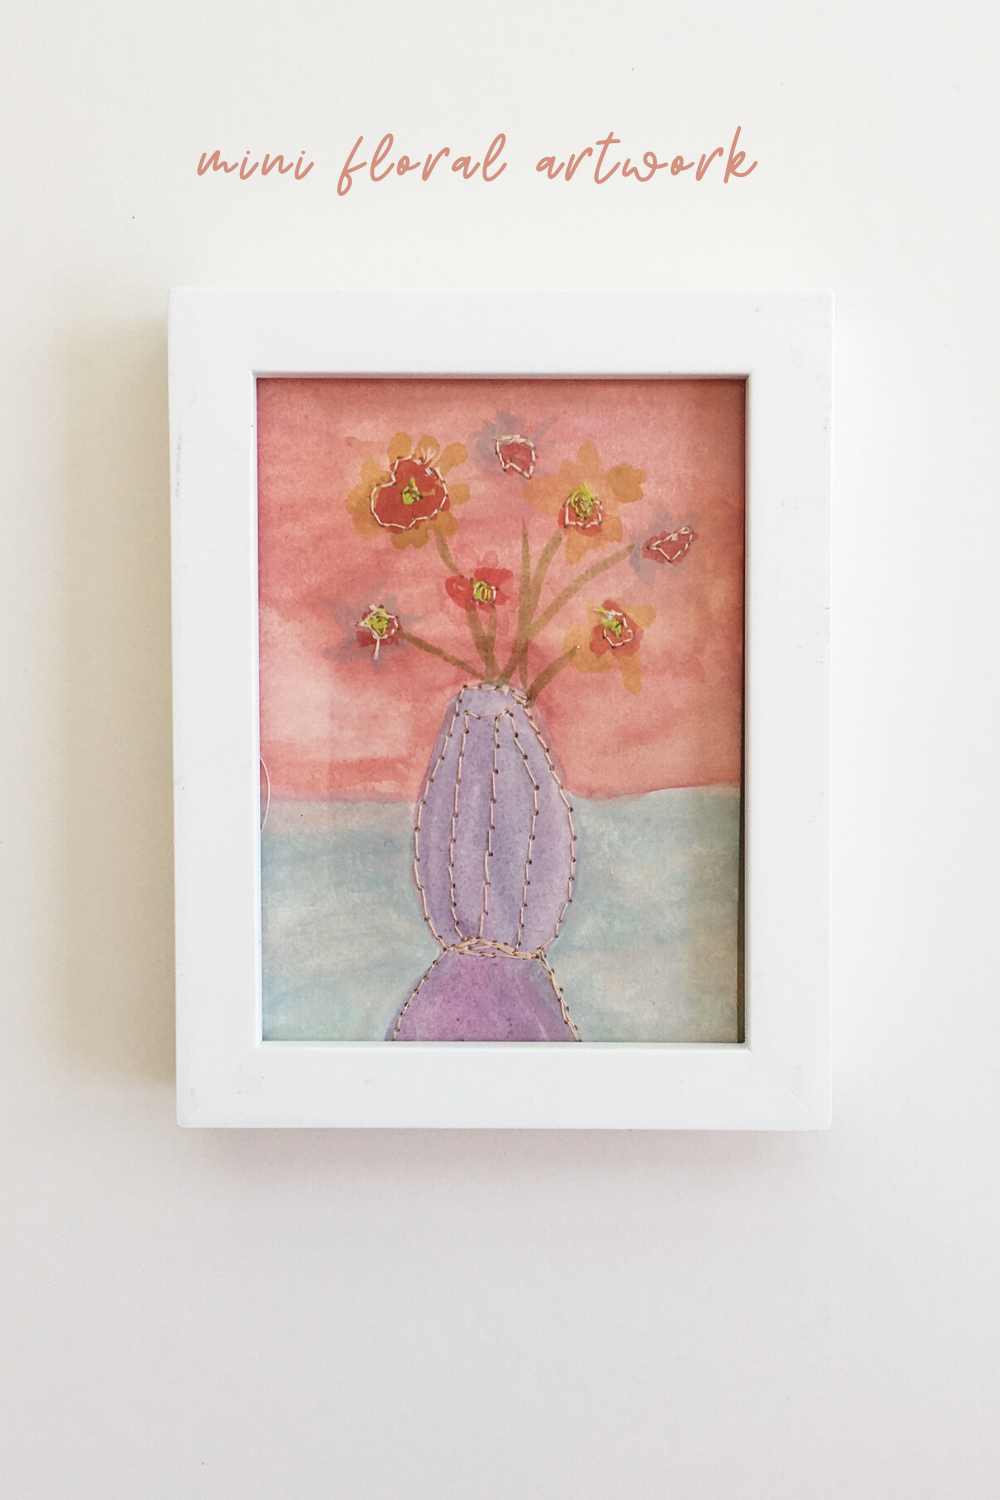 This colorful floral watercolor painting by Meghan Pauley Nespeca would make the perfect Mother's Day gift.  A scene of rosy flowers in a vase is painted on paper and stitched throughout.  #watercolorart #watercolor #art #floralwatercolor #floralwatercolorart #flowerart #mothersdaygifts #artgifts #summerflowers #stitchedpaper #sewnpaper #colorfulhome #smallgifts #flowerlover #gardeninglover #gardengifts #flowergifts #mixedmediaart #mixedmediaartist #artsy #floralhomedecor #colorfulart